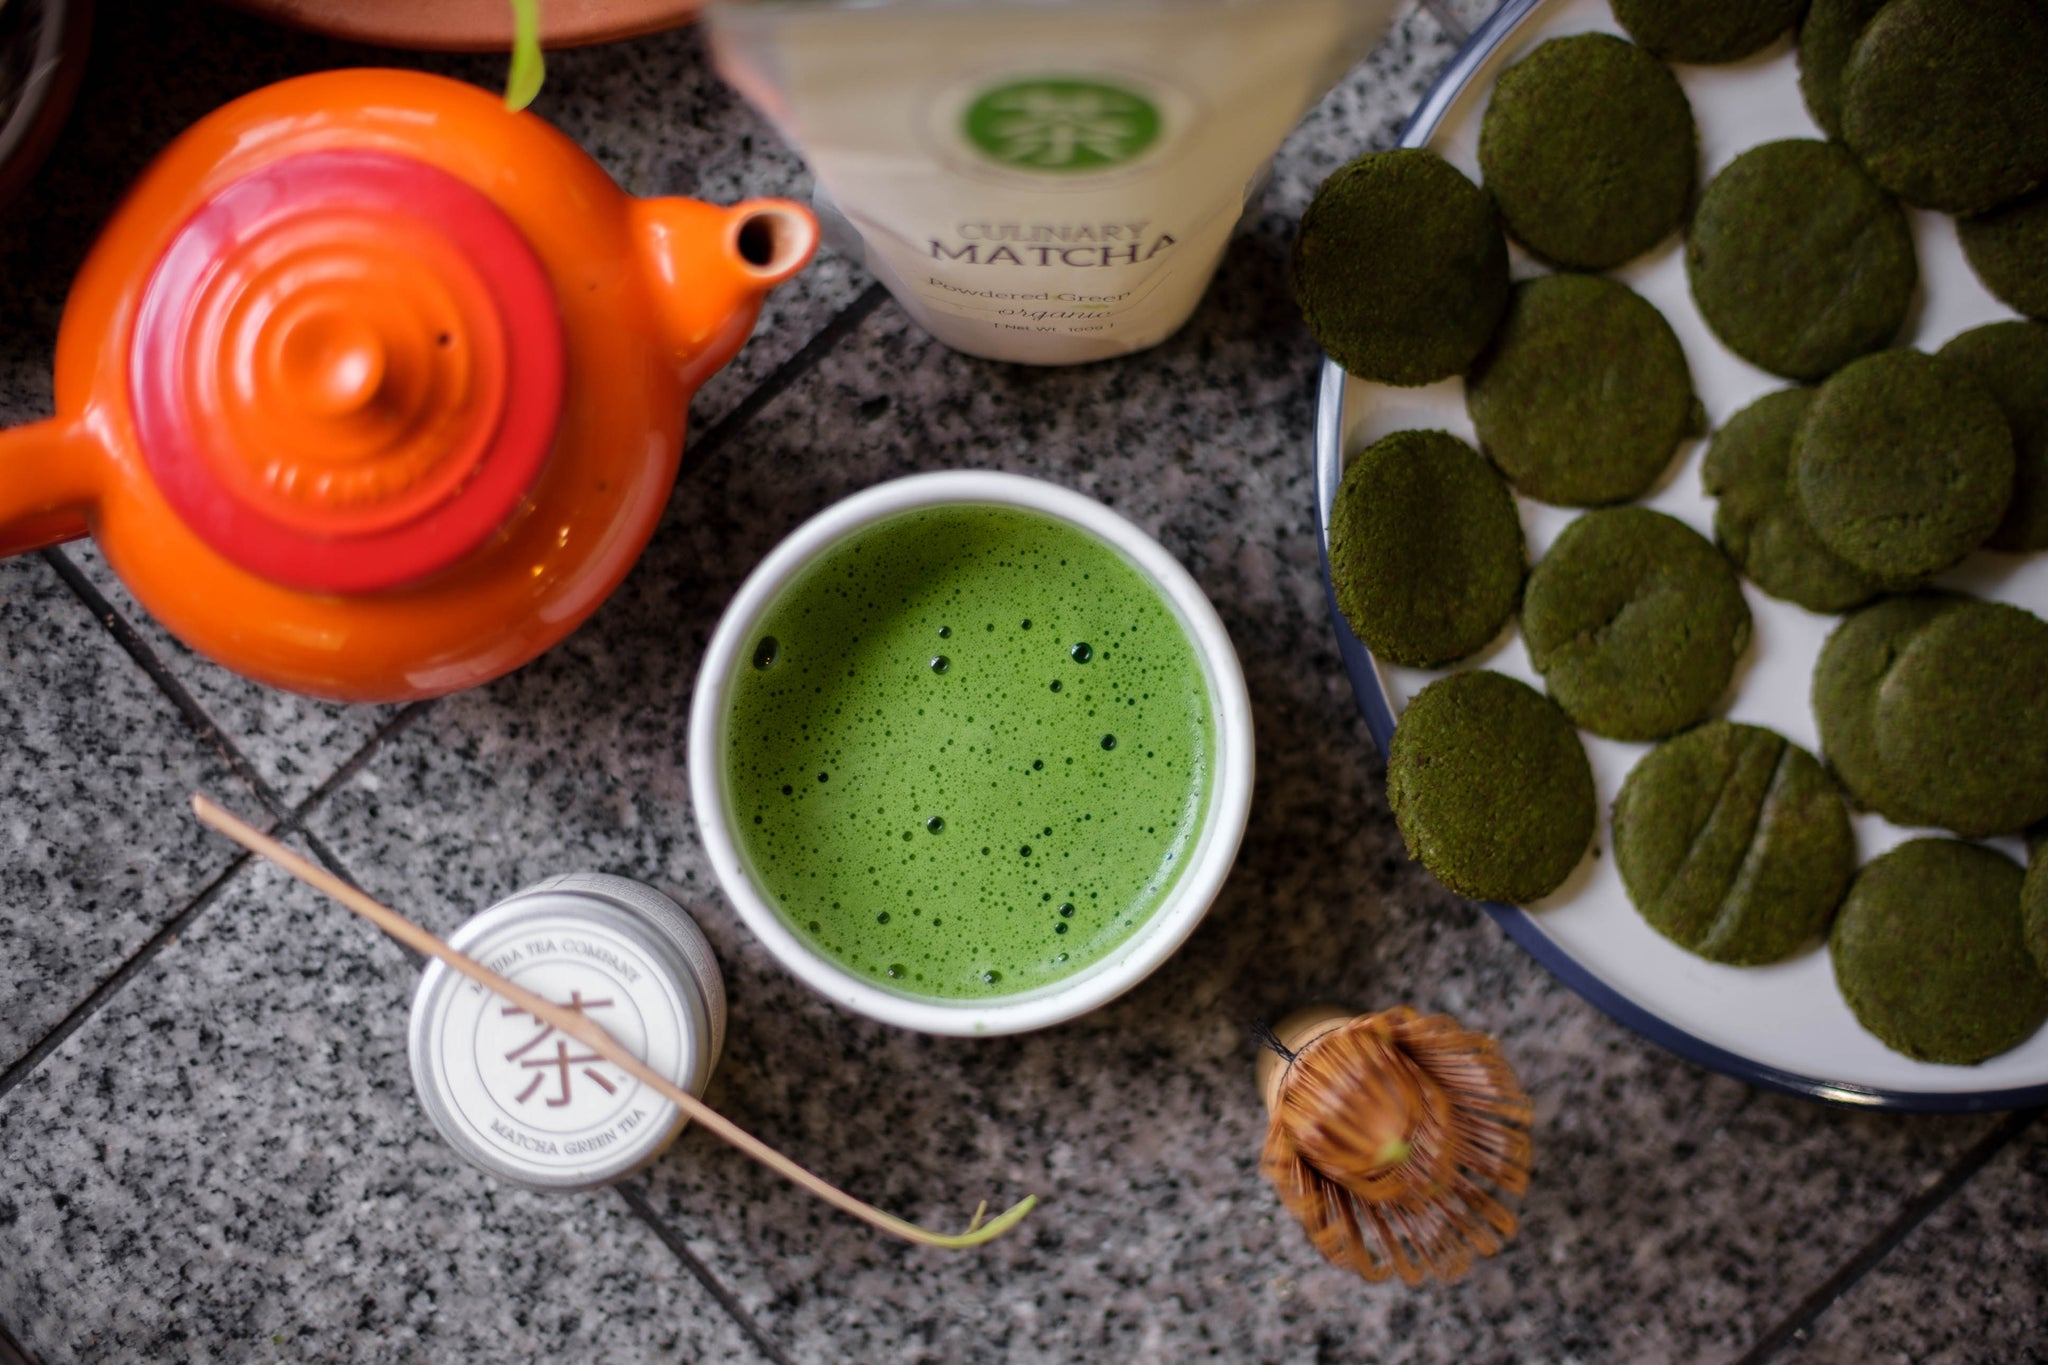 What is the difference between ceremonial and culinary matcha?